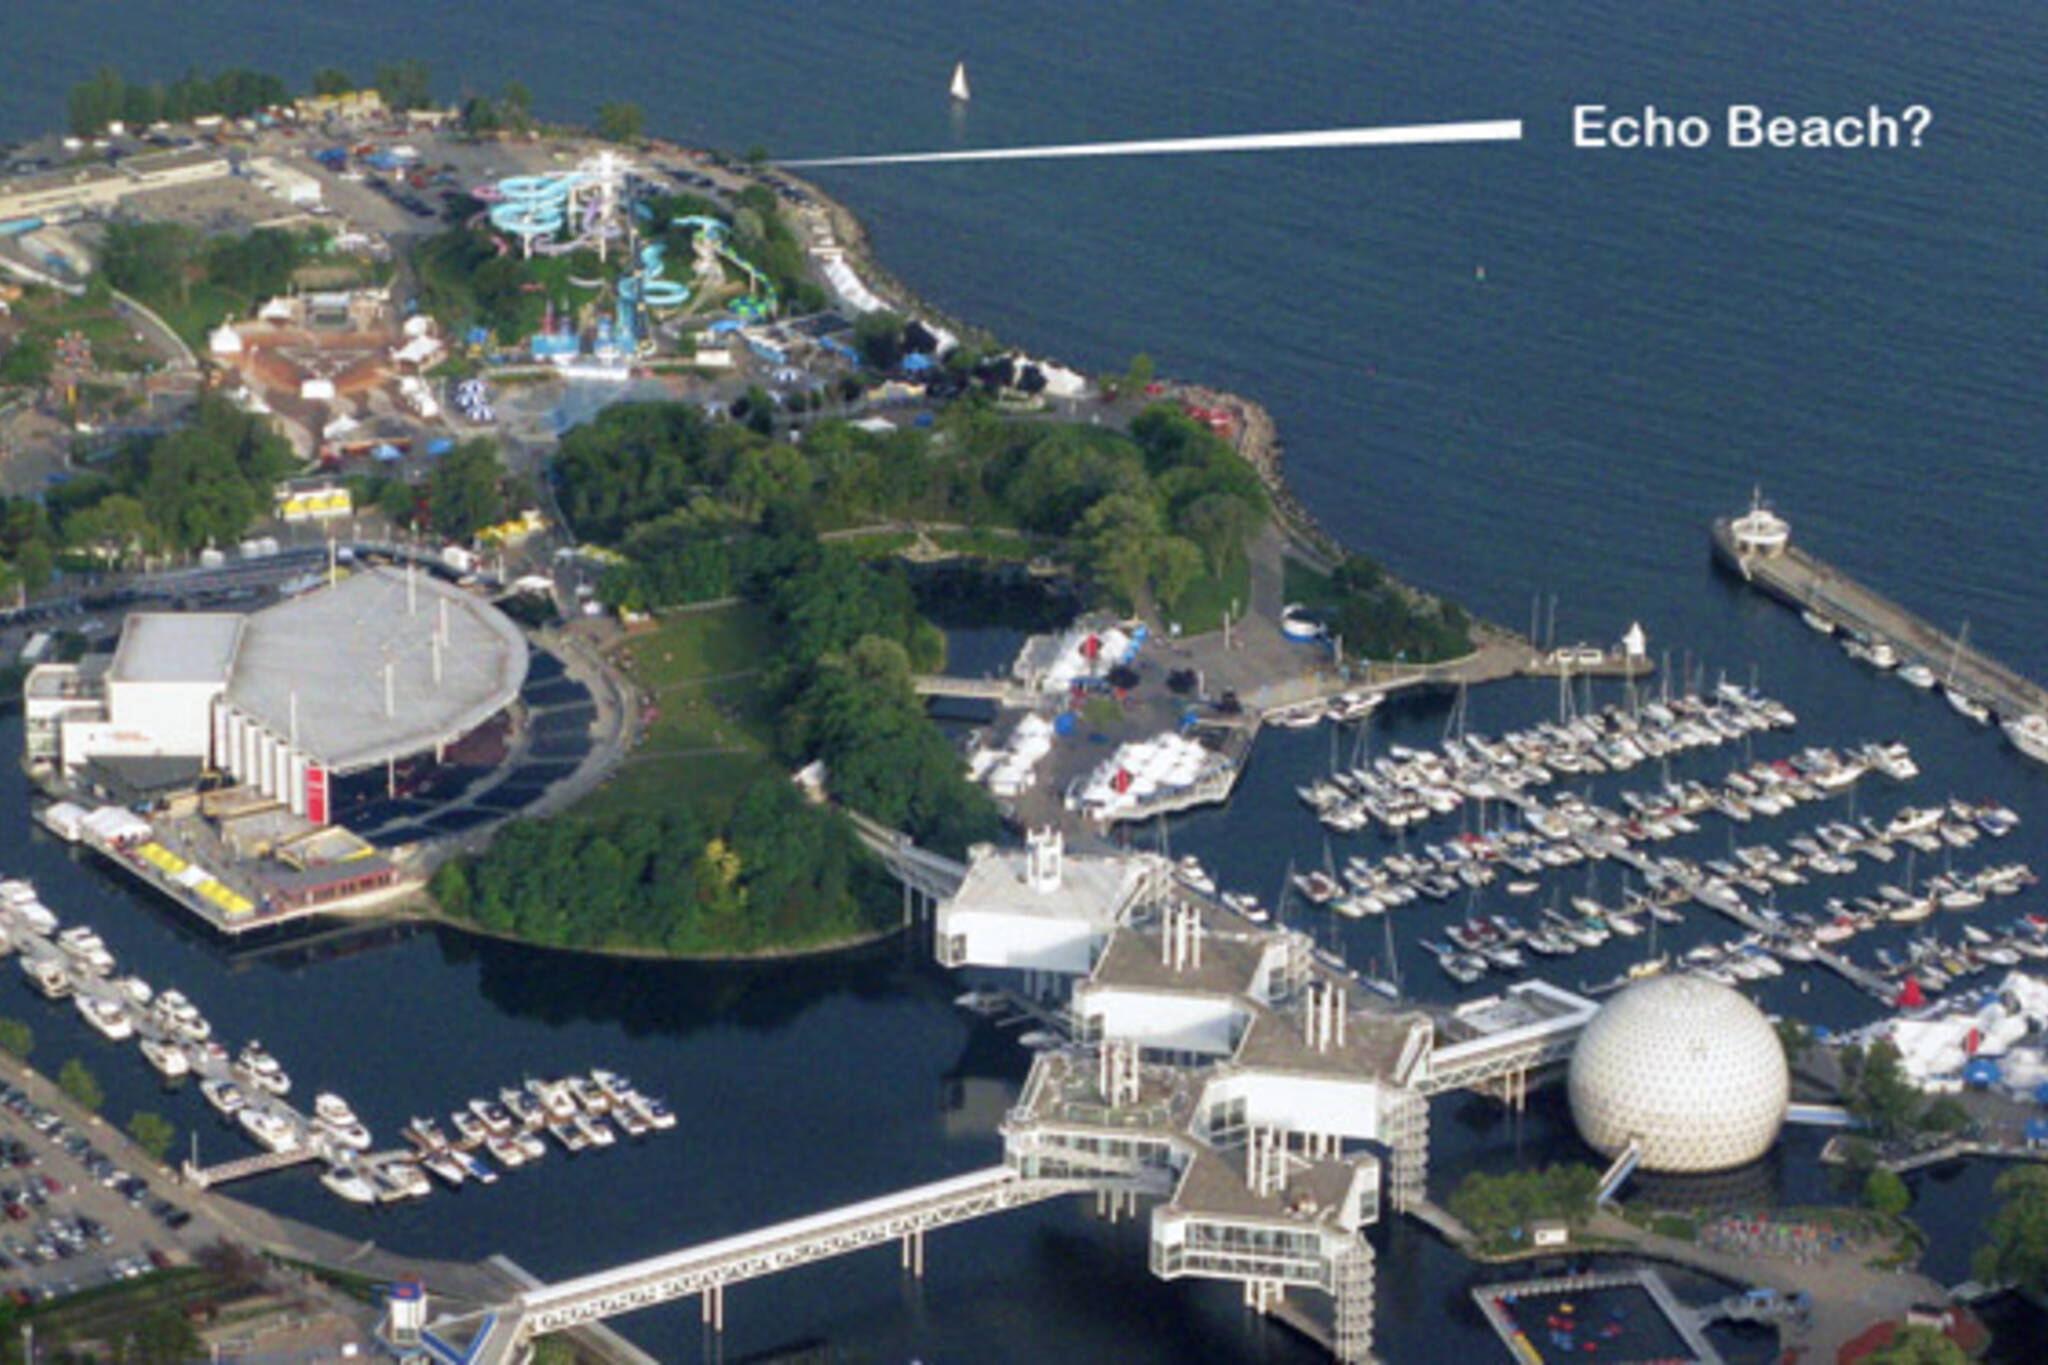 Echo Beach Concert Venue